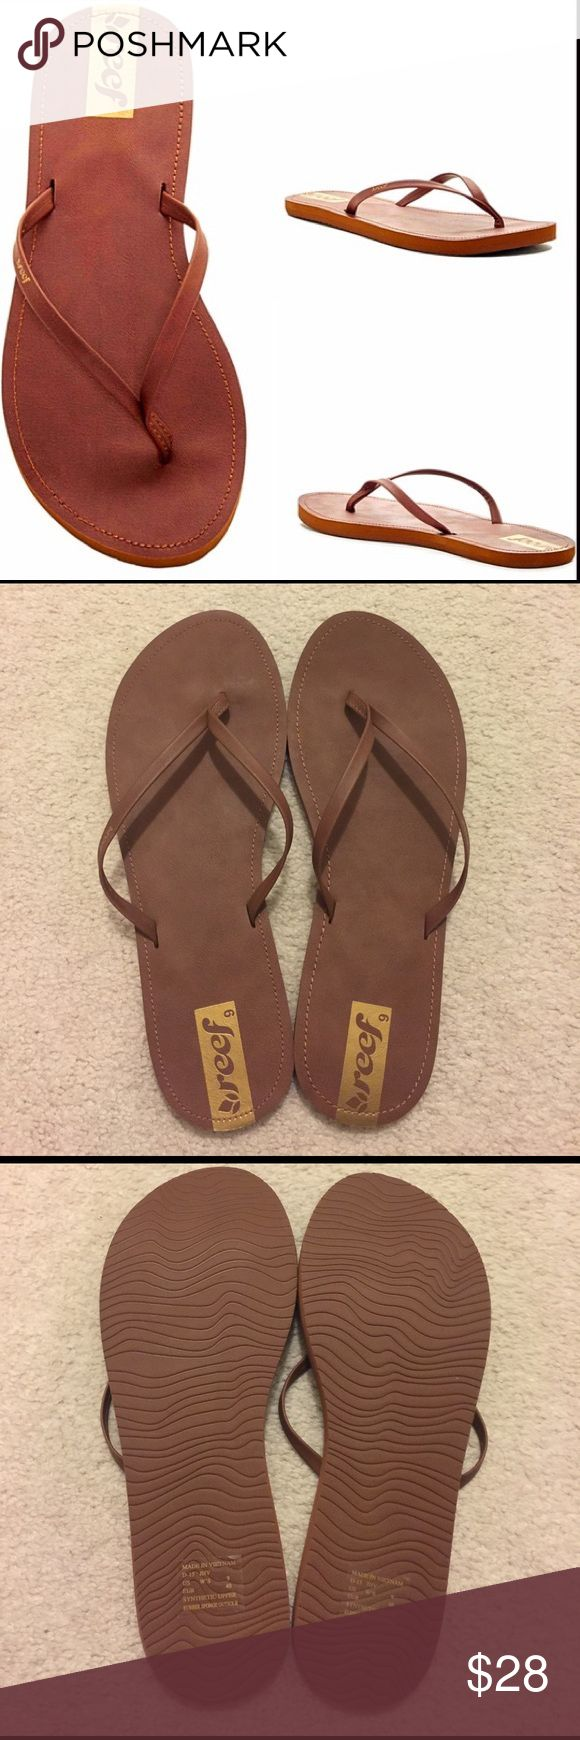 Brand New REEF Flip Flops Chestnut brown vegan leather flip flops with gold REEF branding. Women's size 9. Brand New- never worn. Offers considered Reef Shoes